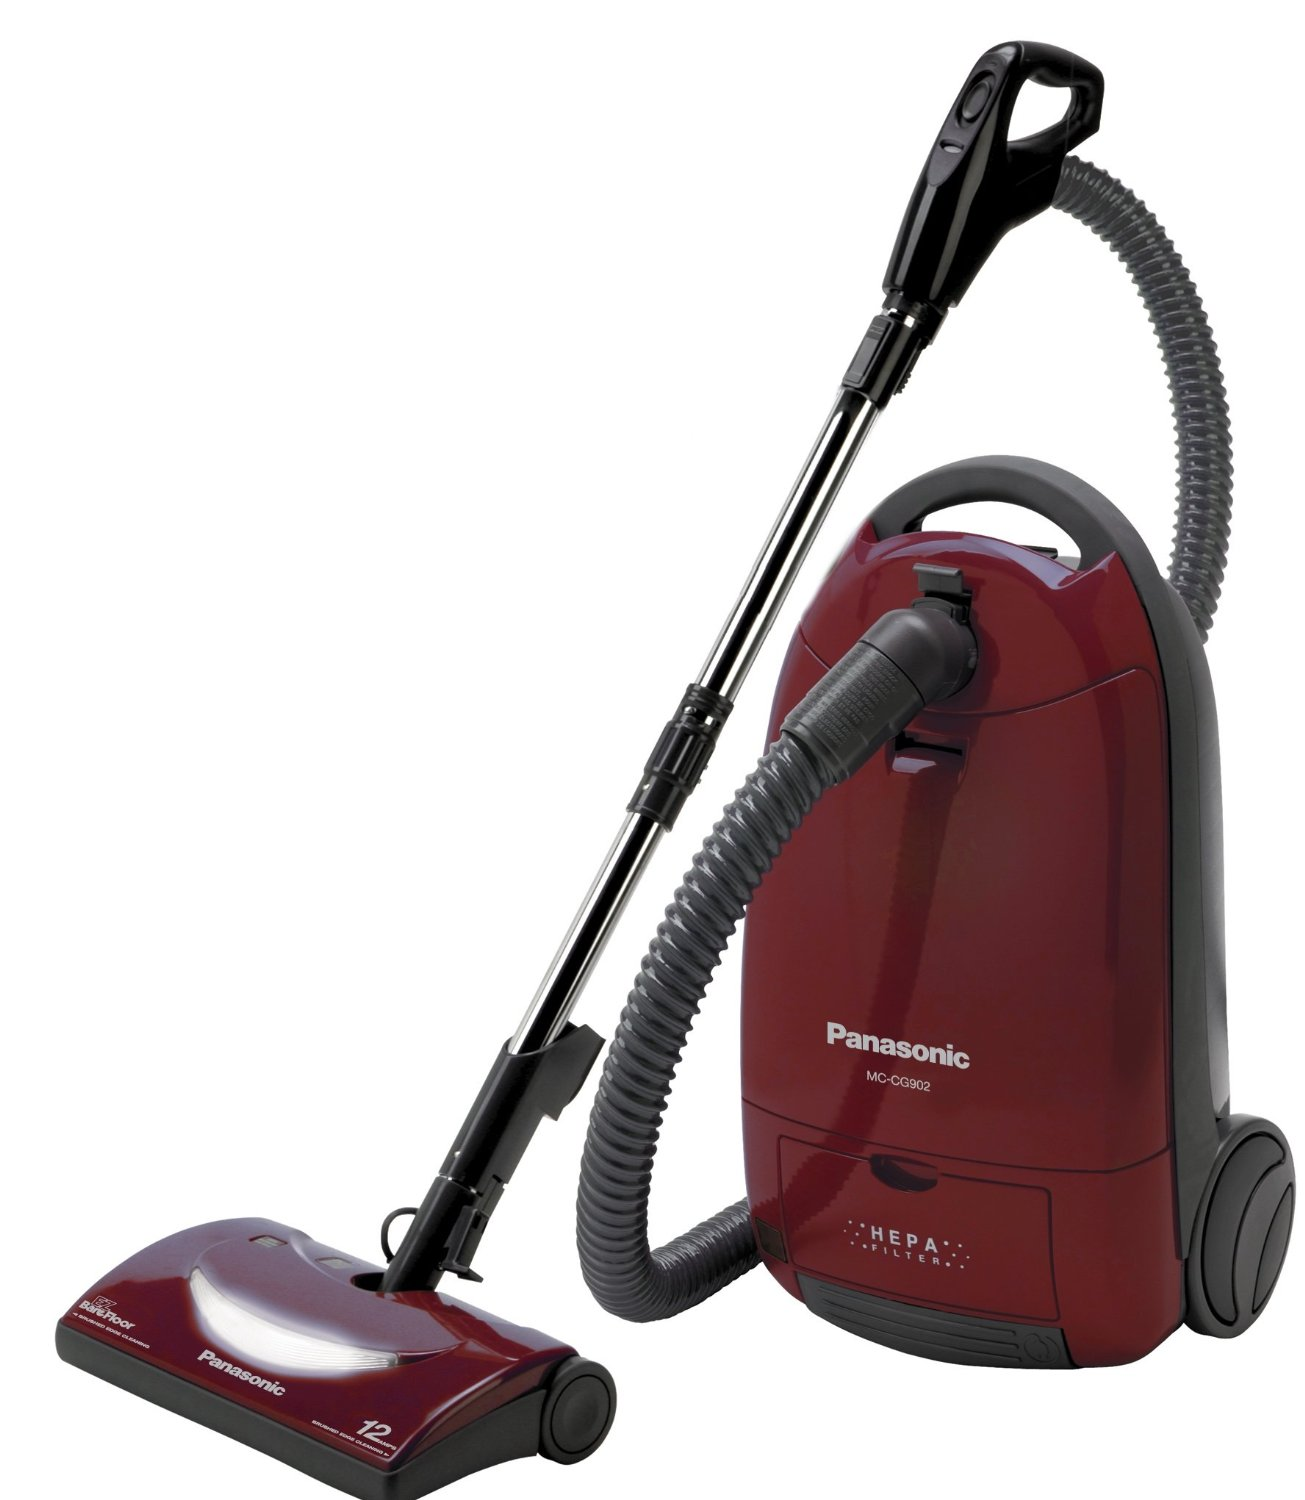 Panasonic Vacum Cleaner